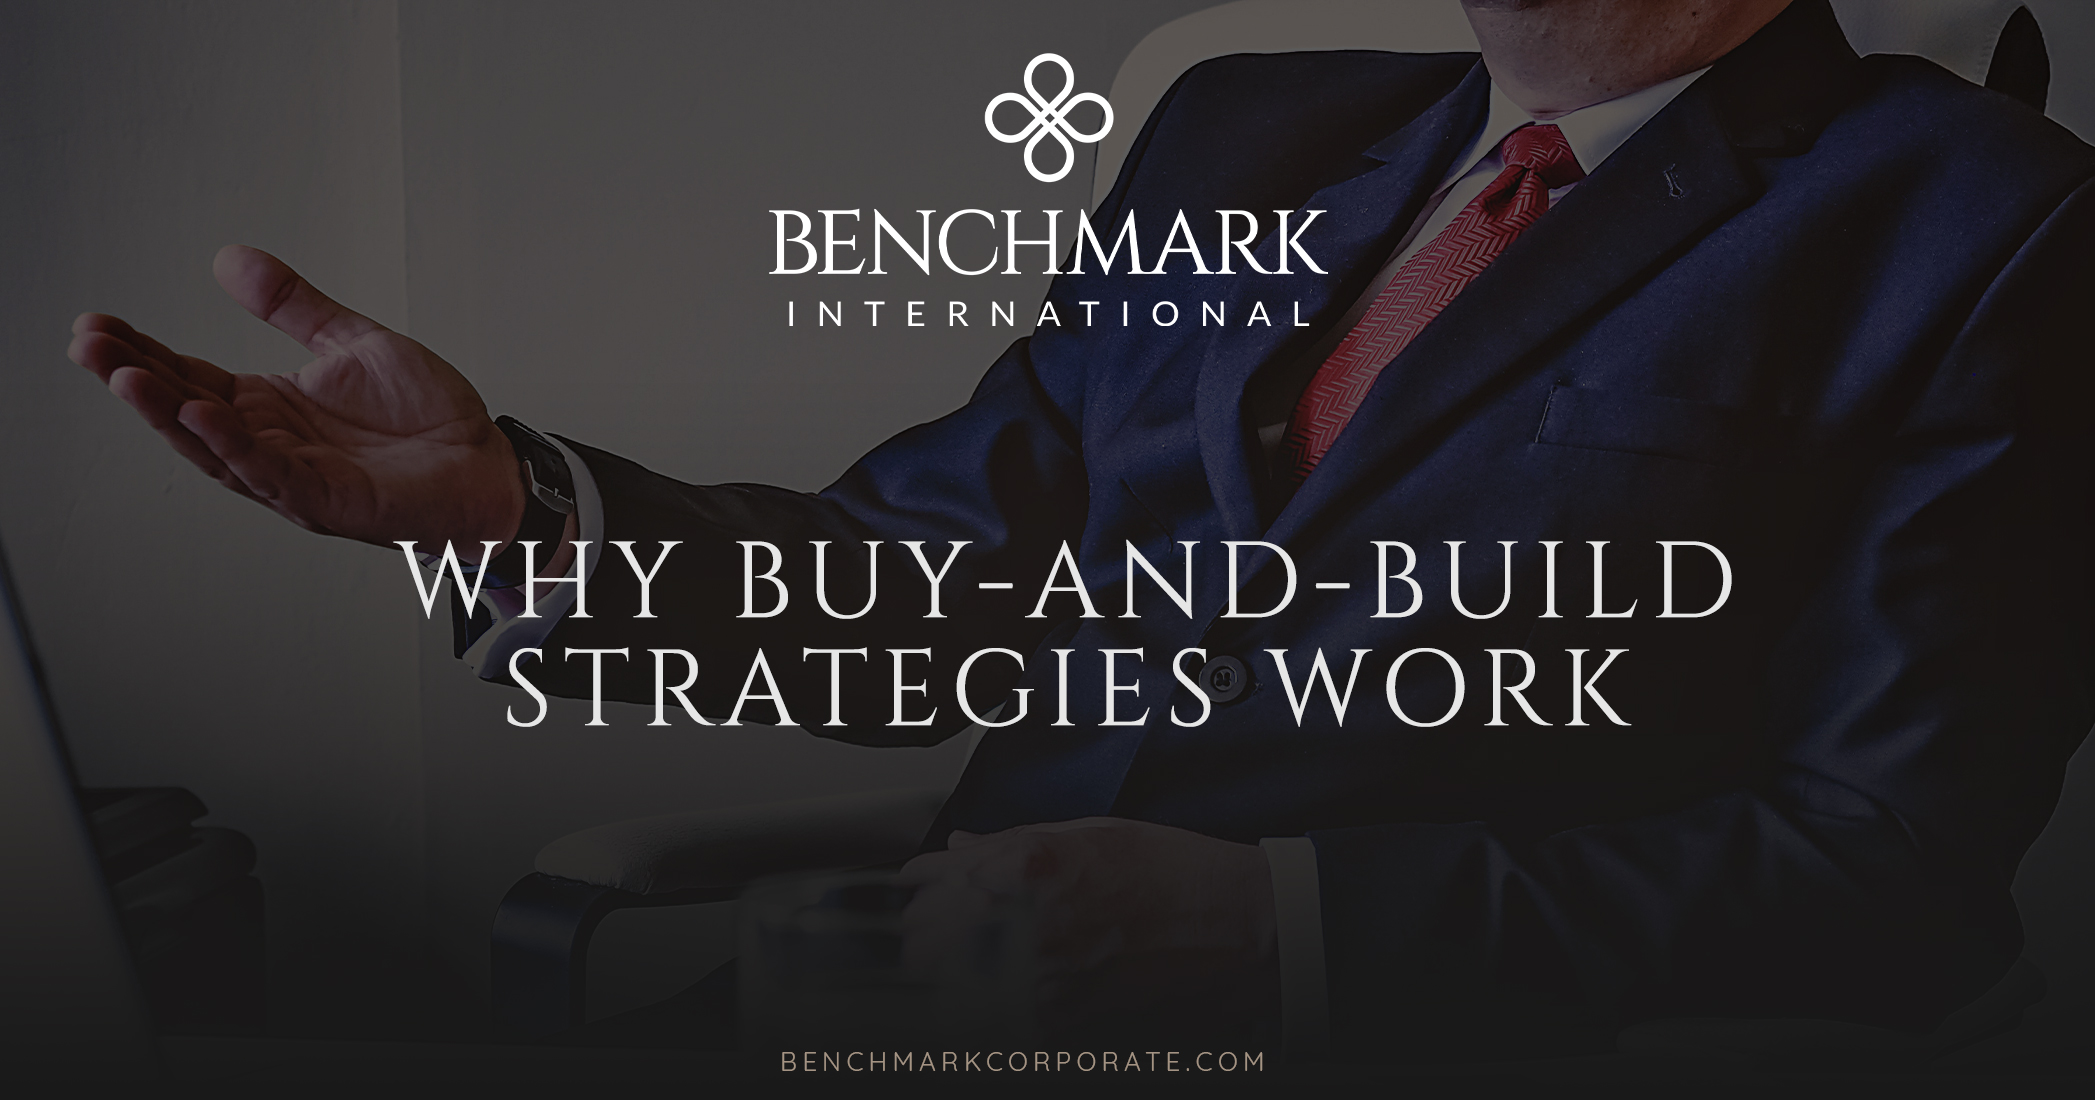 Why Buy-and-build Strategies Work